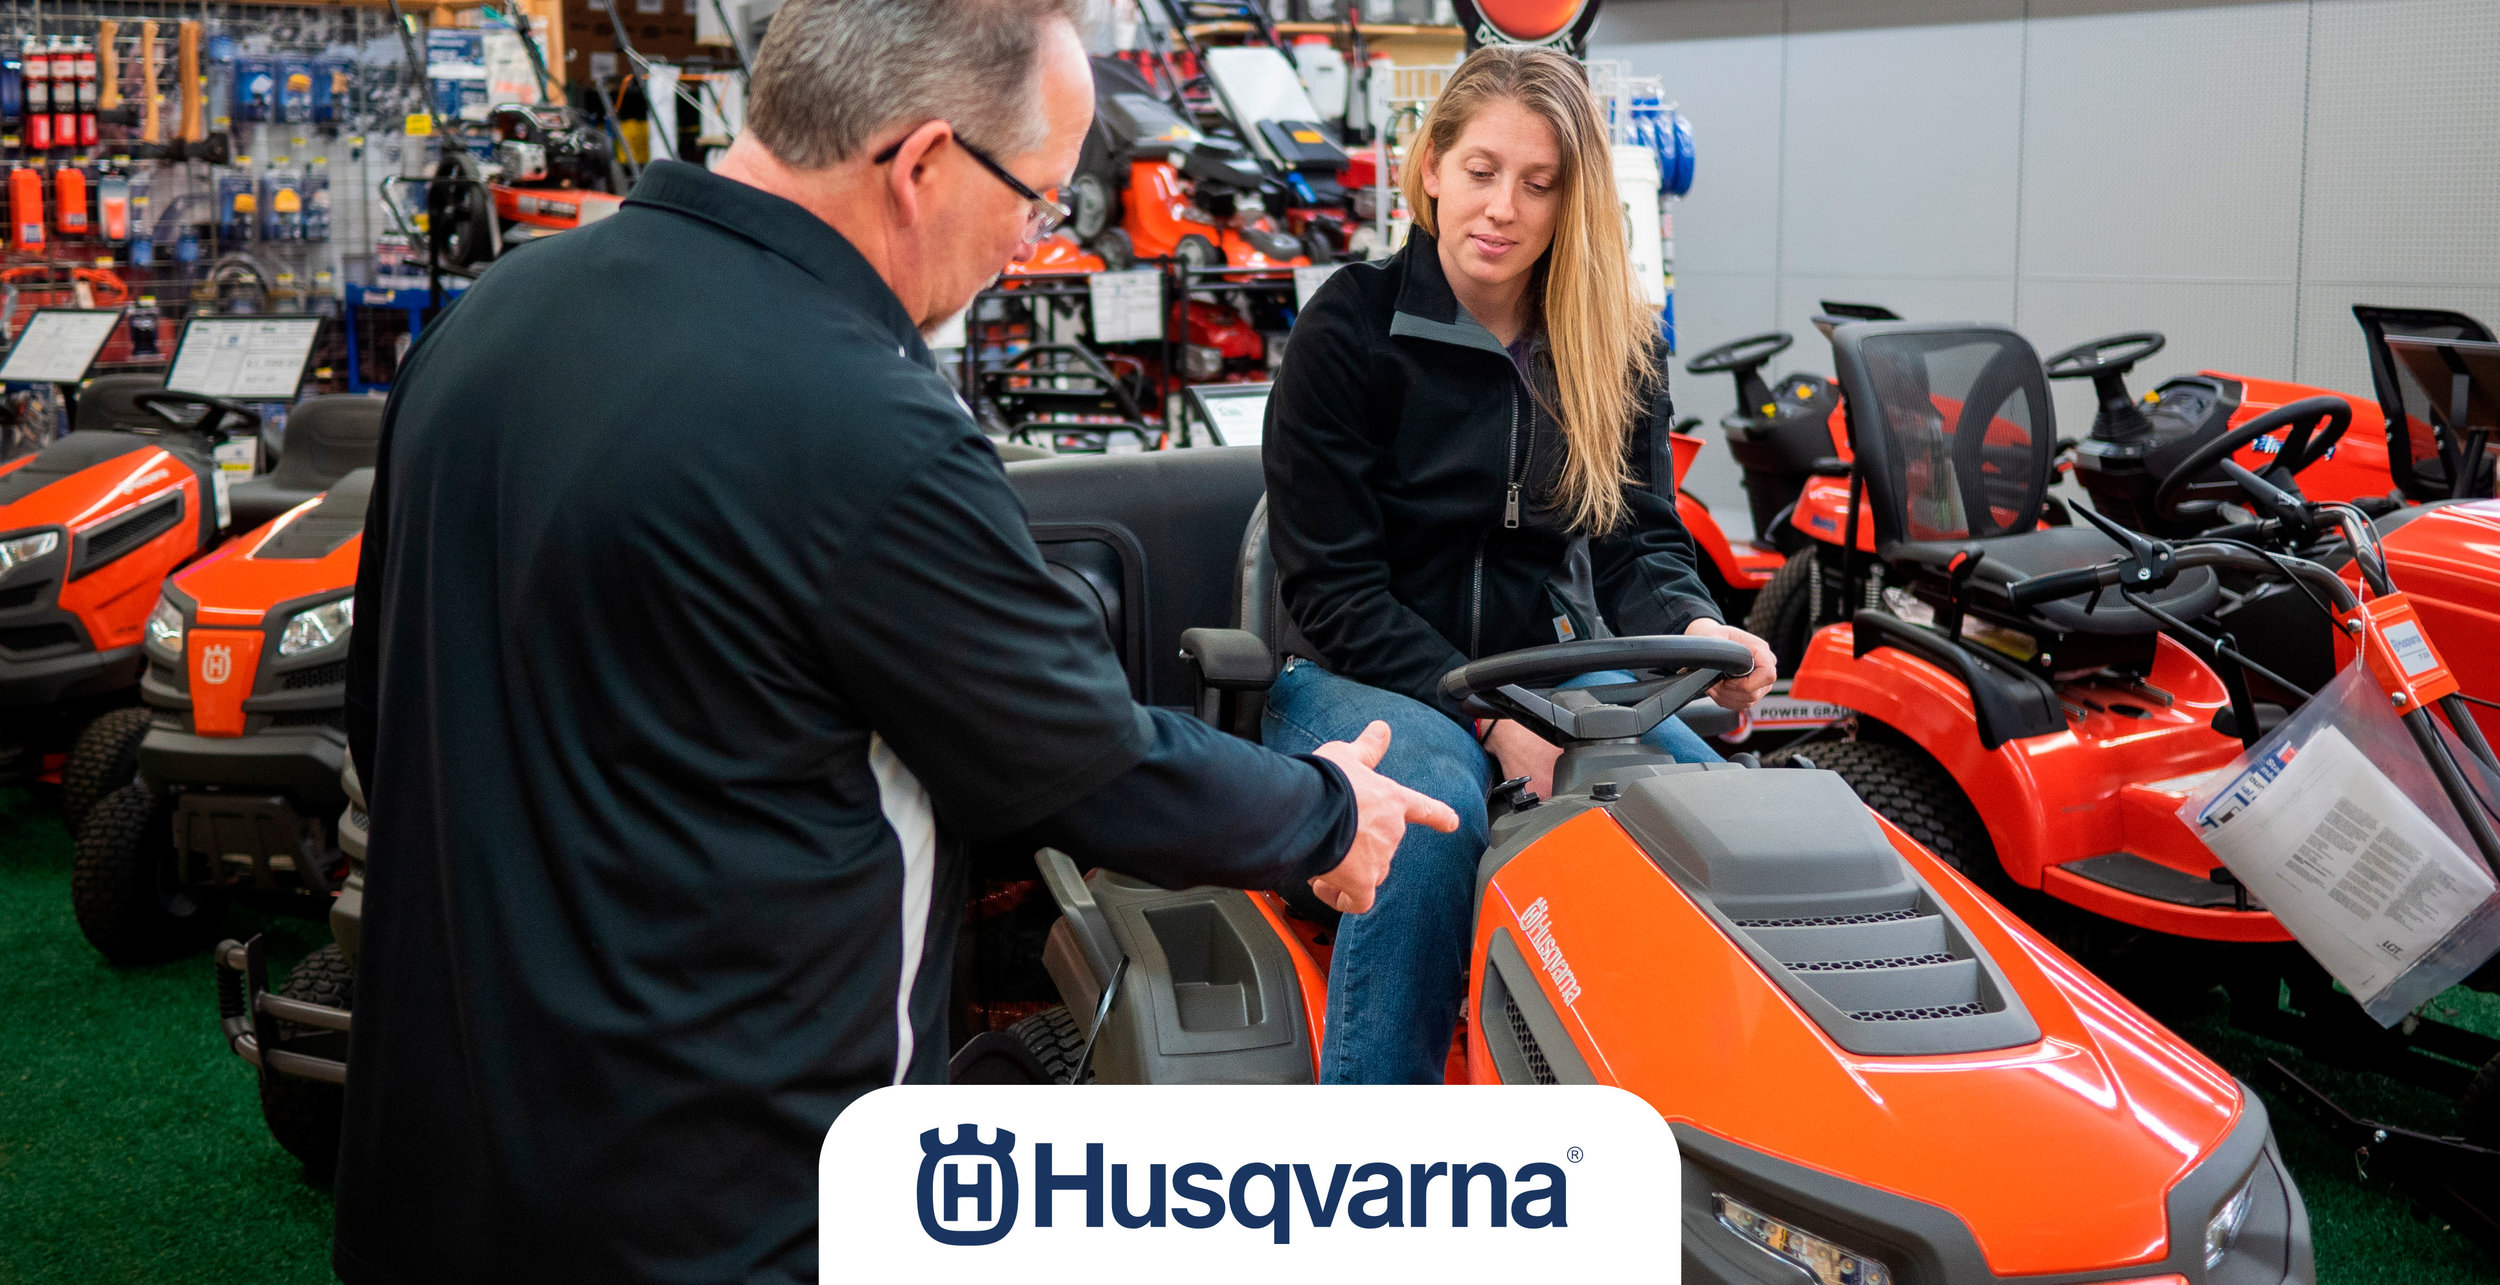 Husqvarna lawn mowers for sale at Farm & Home Hardware.